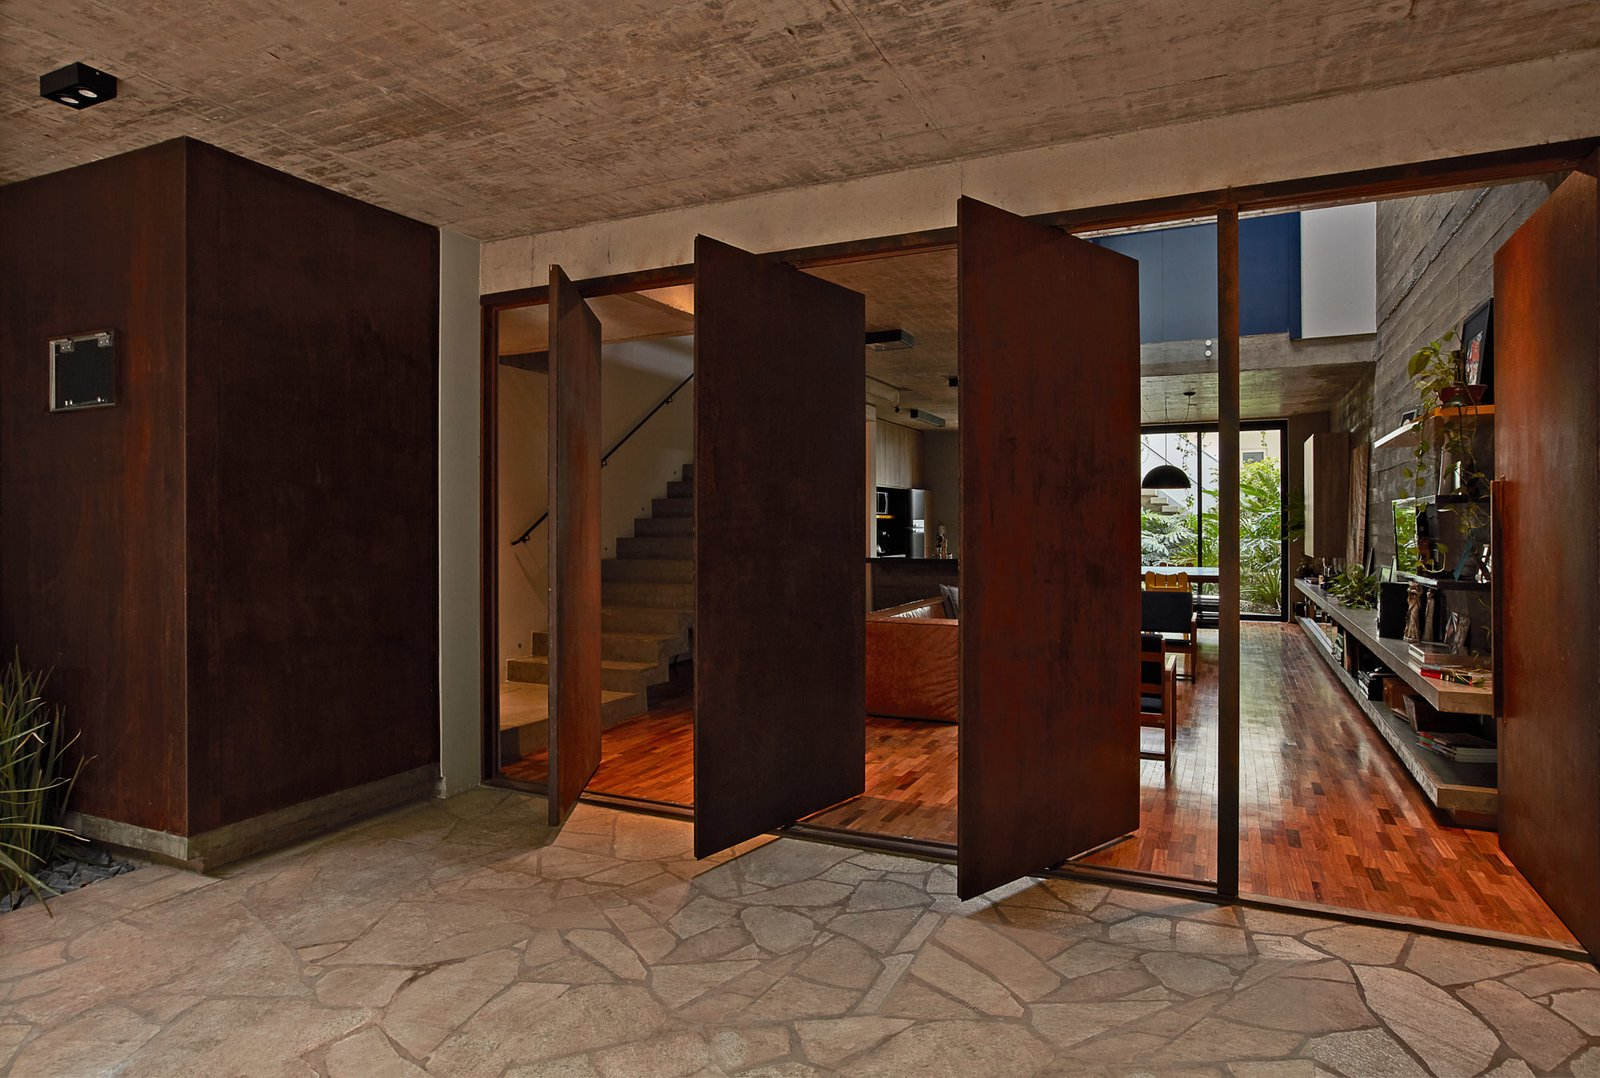 frames office interior doors steel on pinterest door ideas best and glass metal